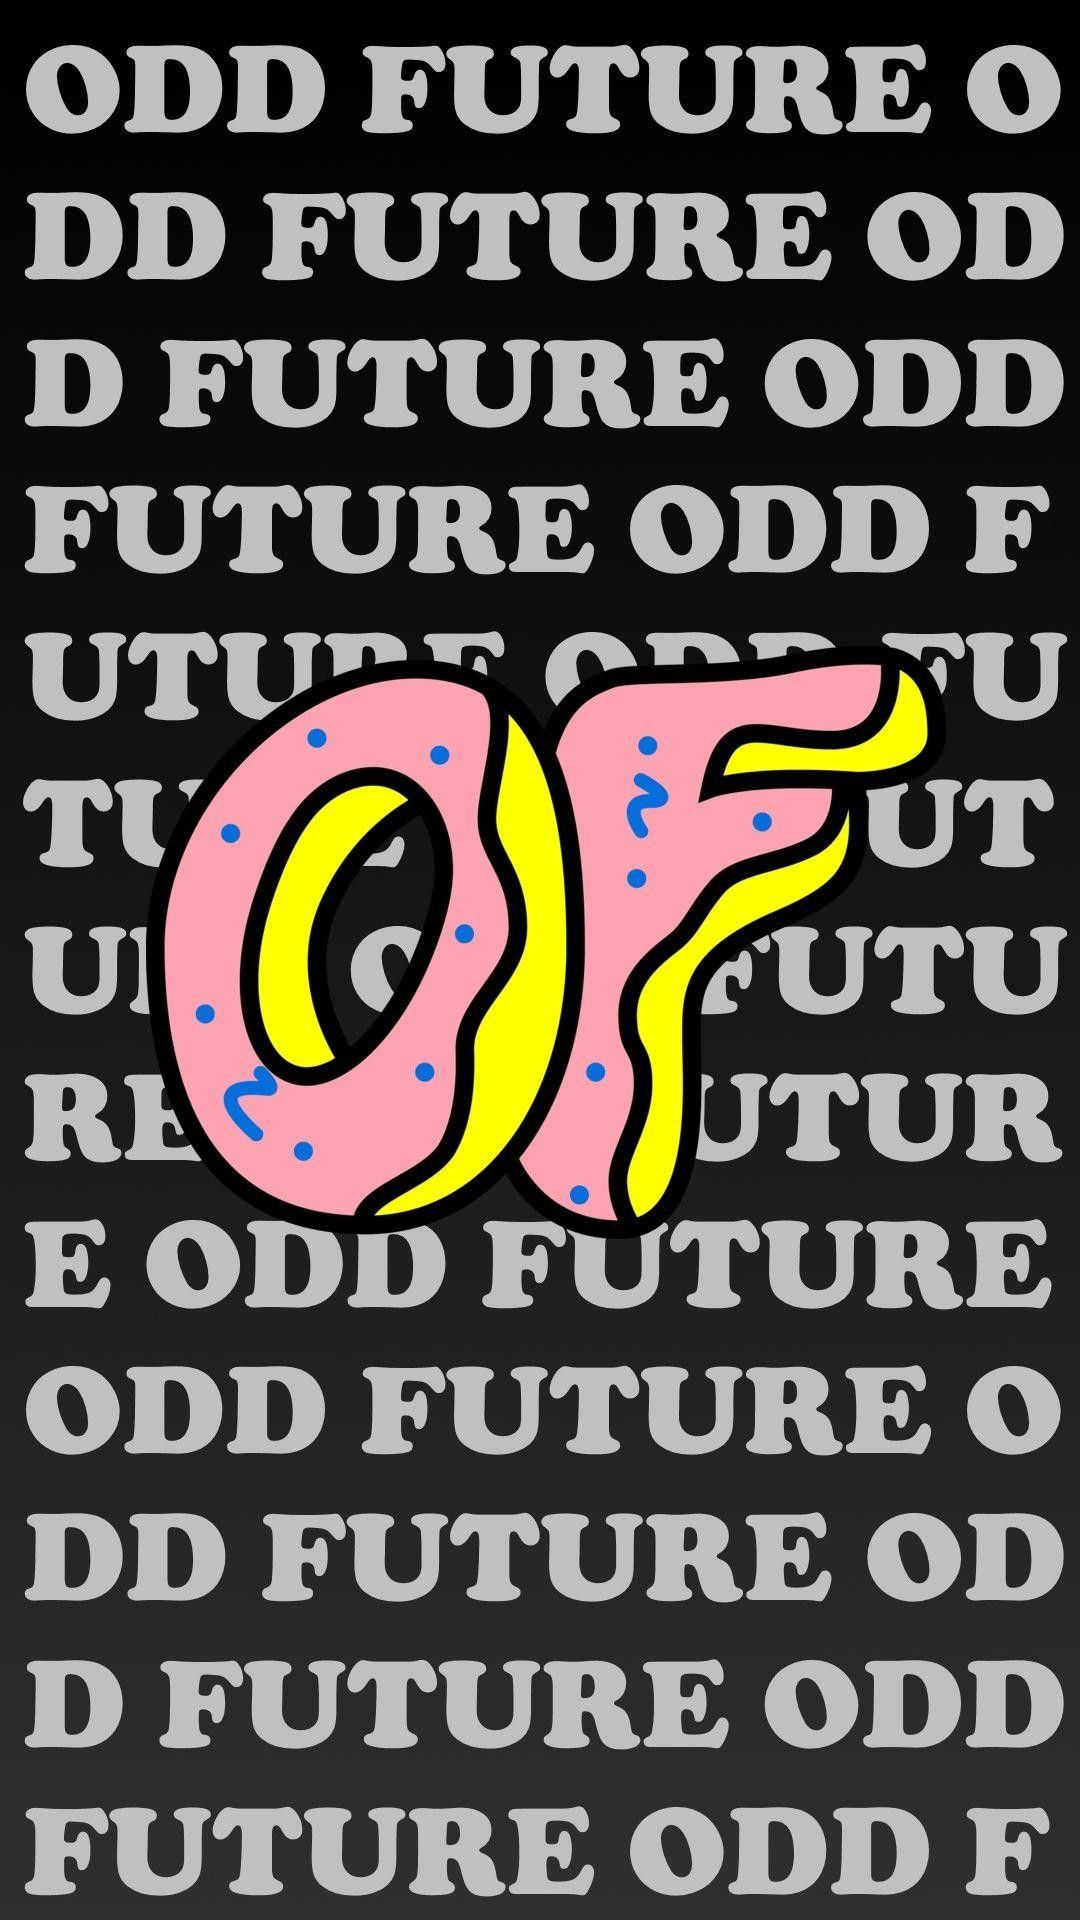 15 Best Free Odd Future IPhone Wallpapers